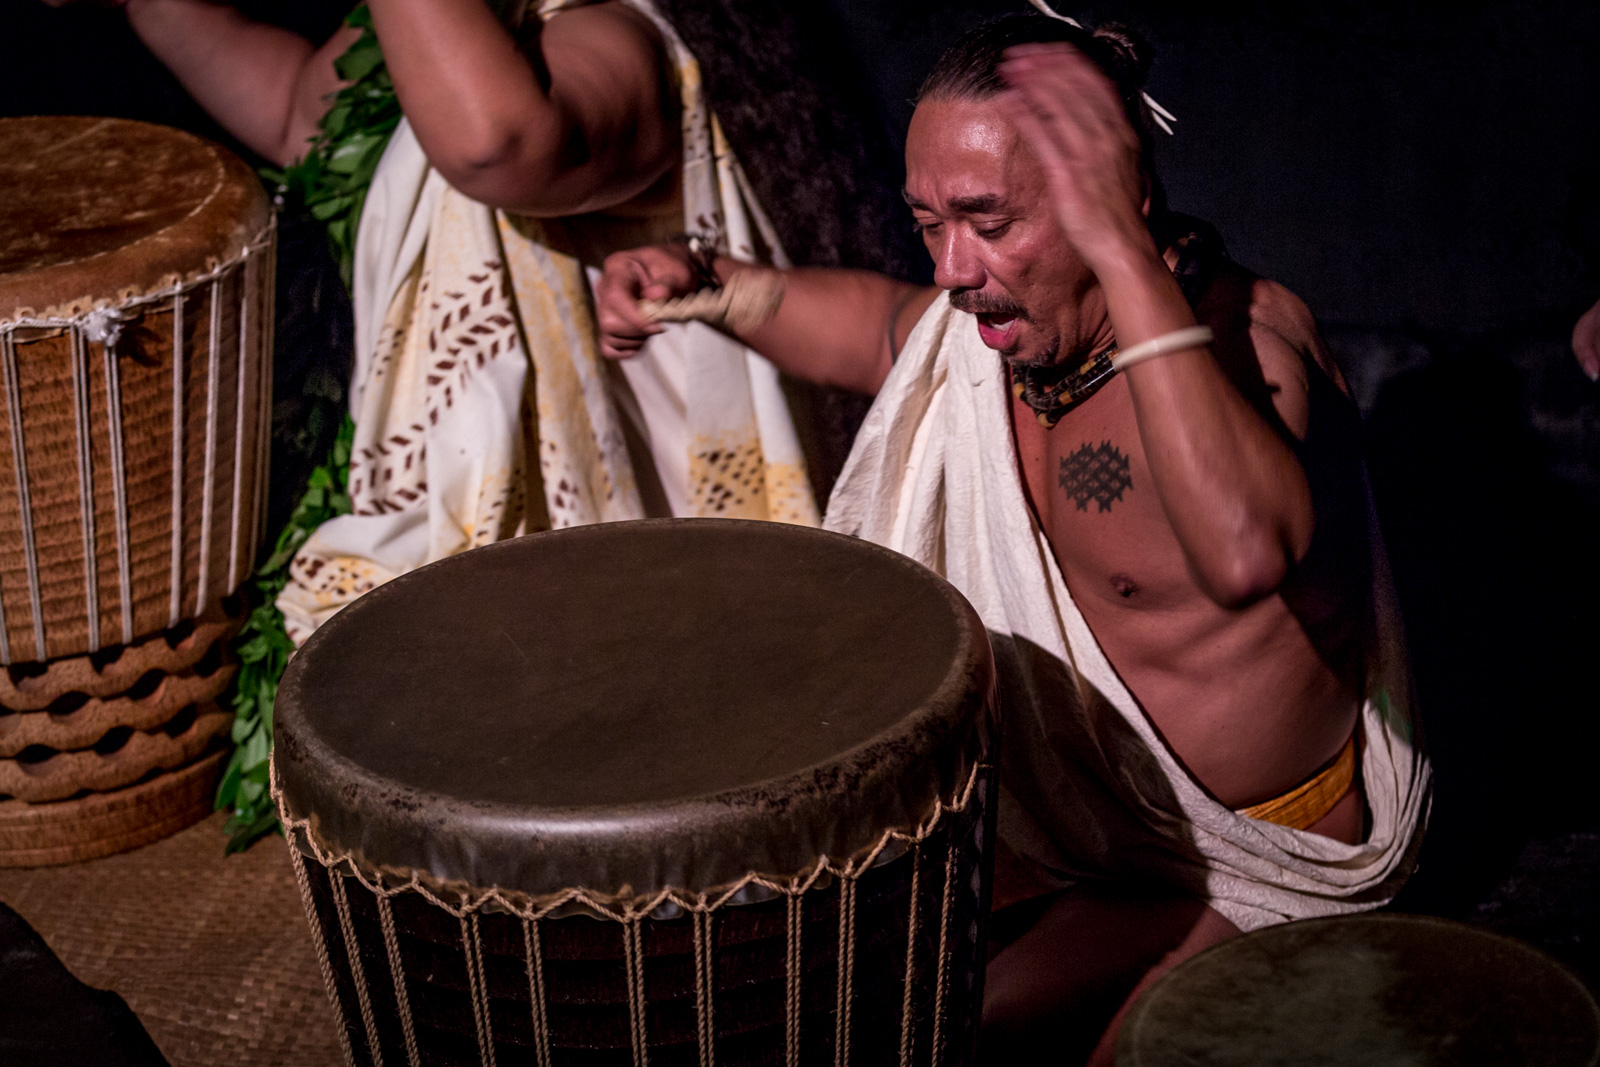 Keali'i Reichel and members of his halau perform chant and hula